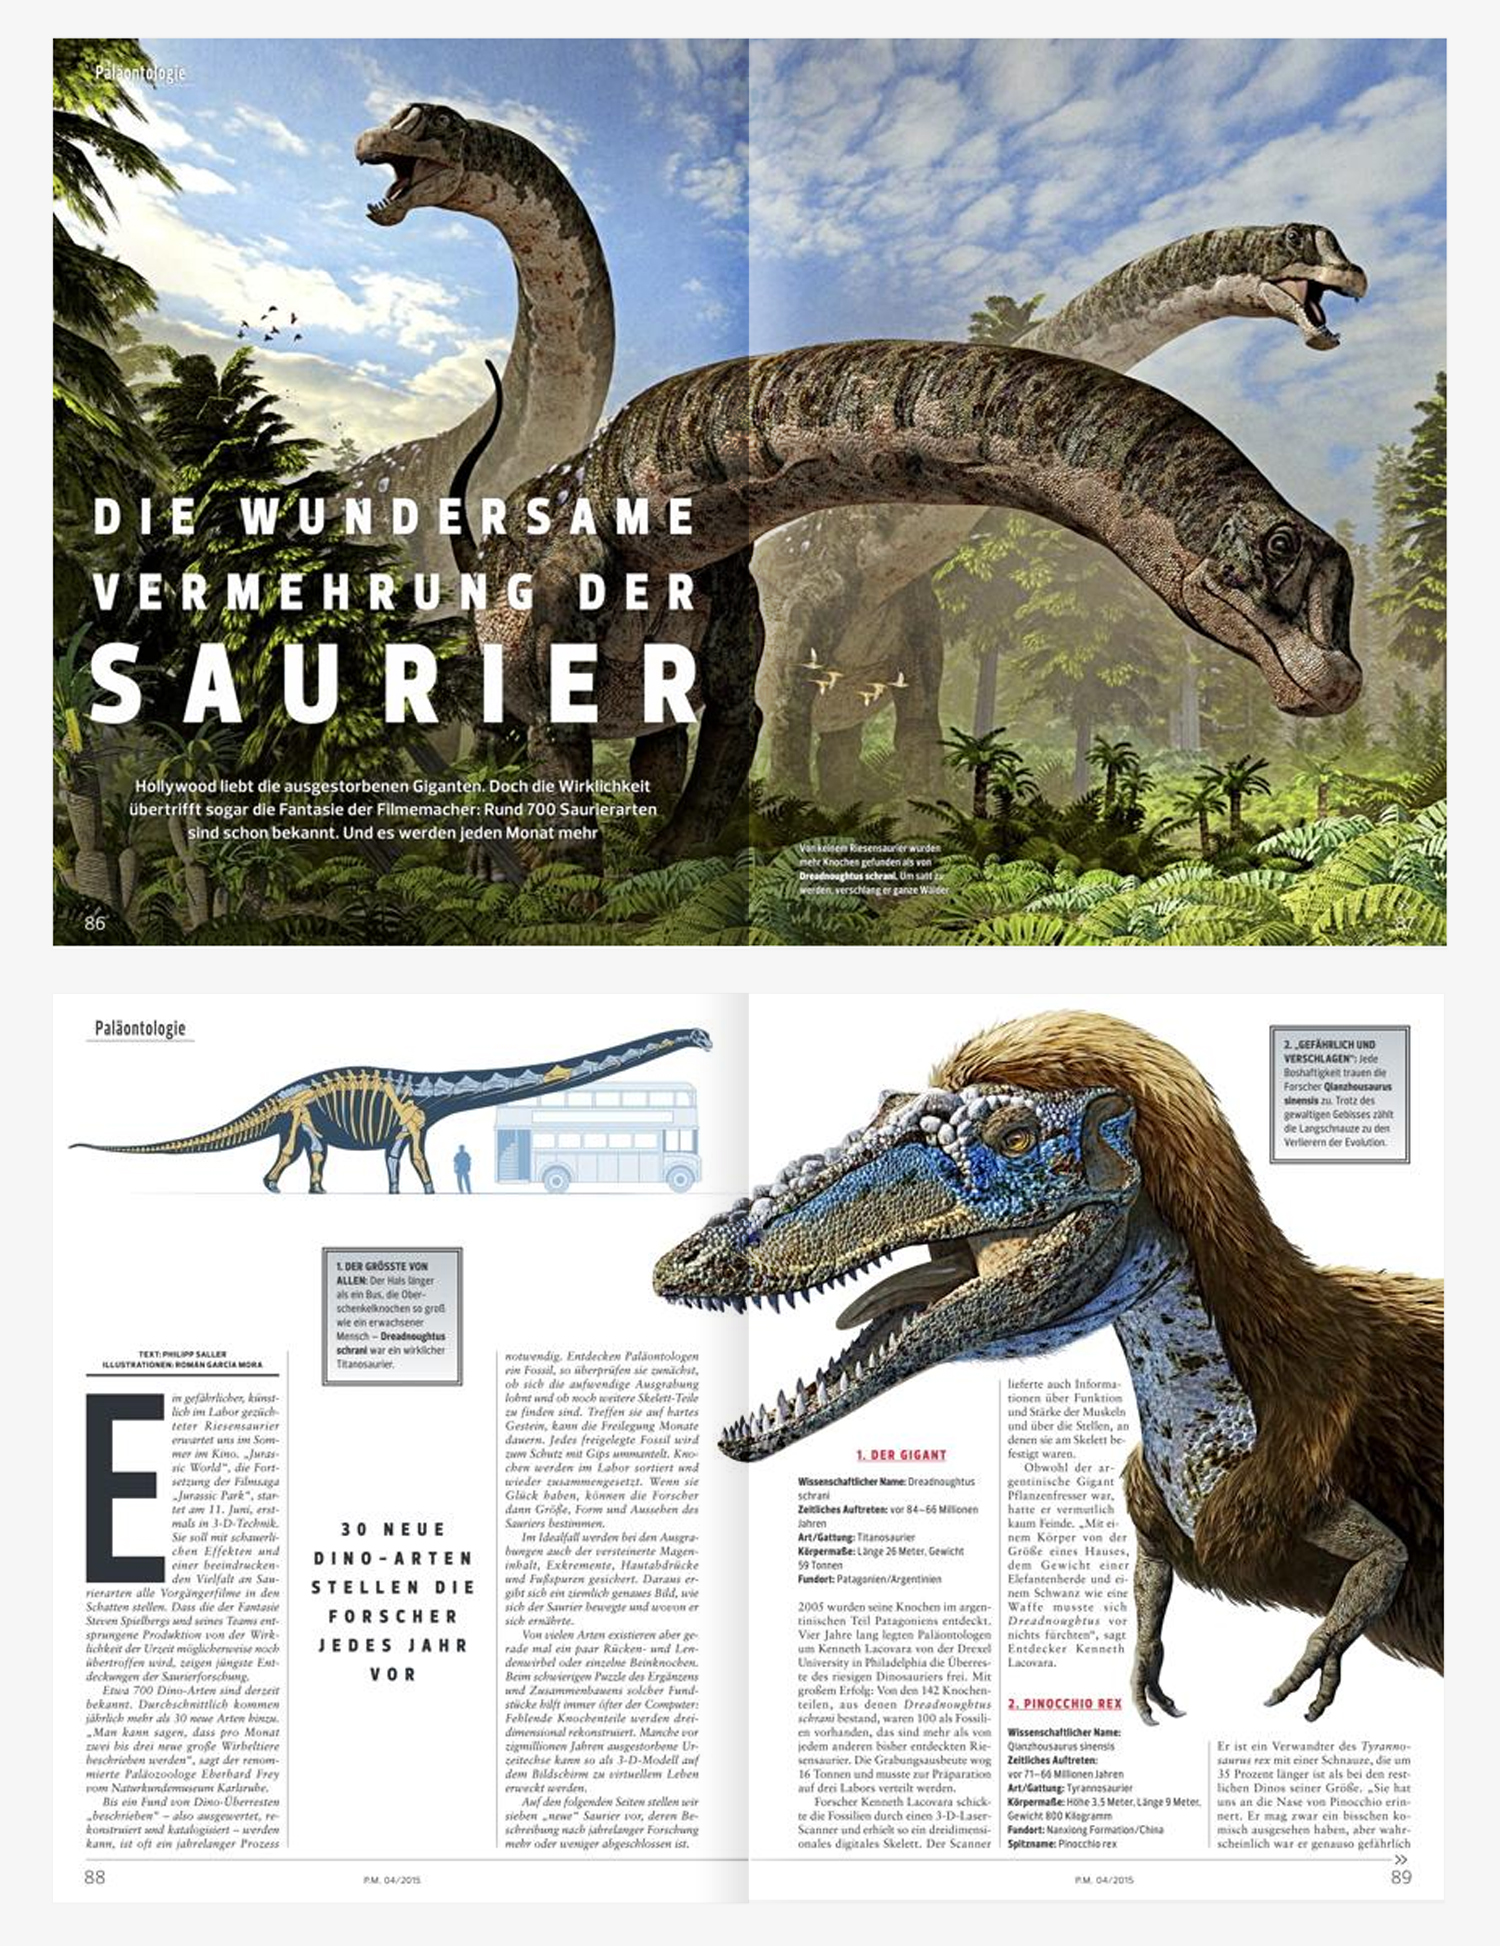 New Stars in the Dinosaur World, PM Magazin April 2015. First pages of the issue. Art by Román García Mora.